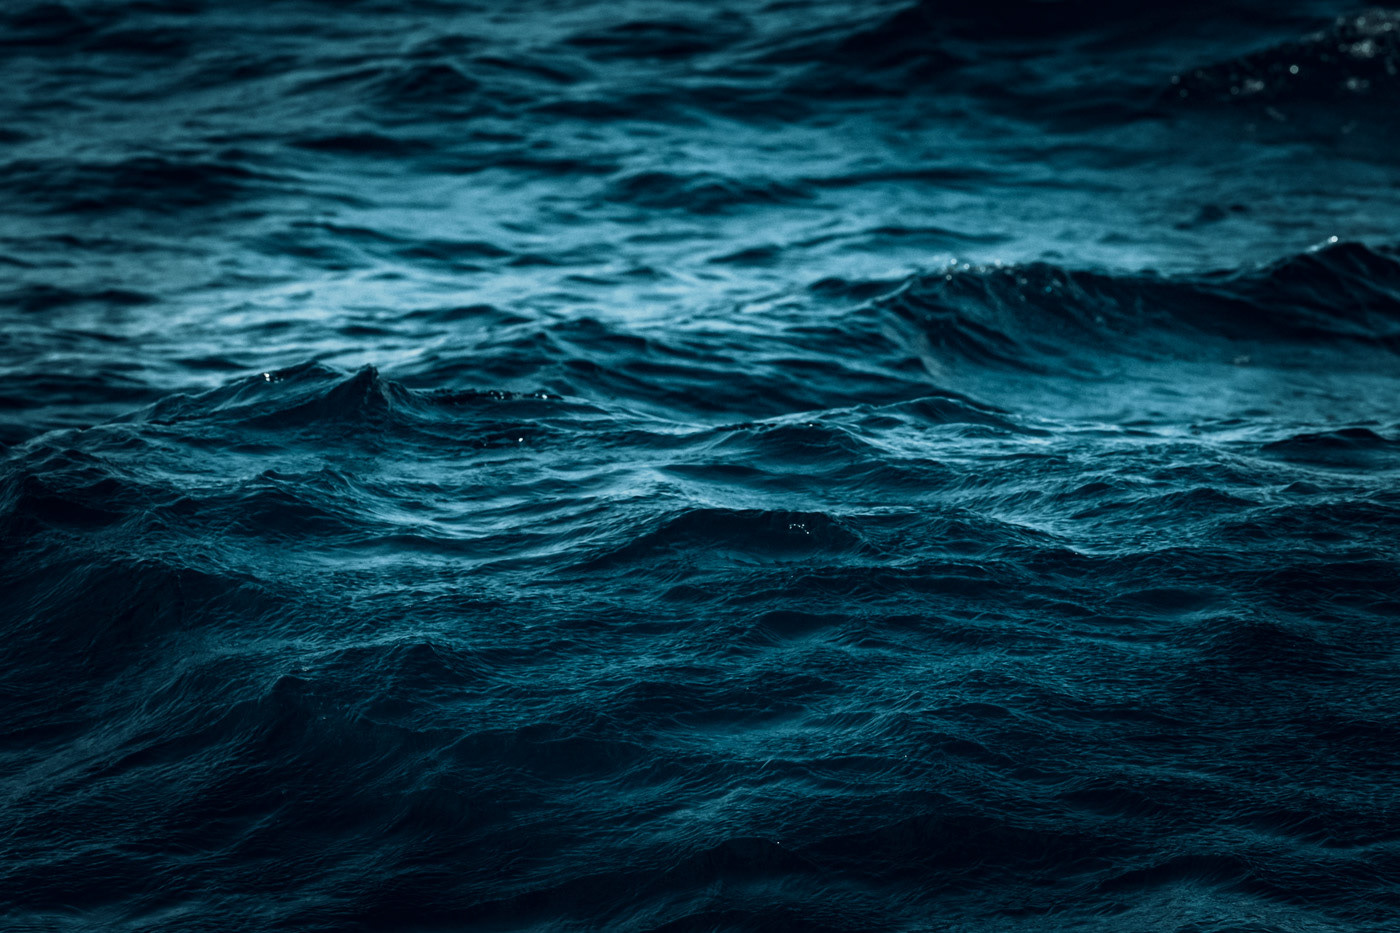 abstract background Landscape Nature Ocean sailing sea ship water waves